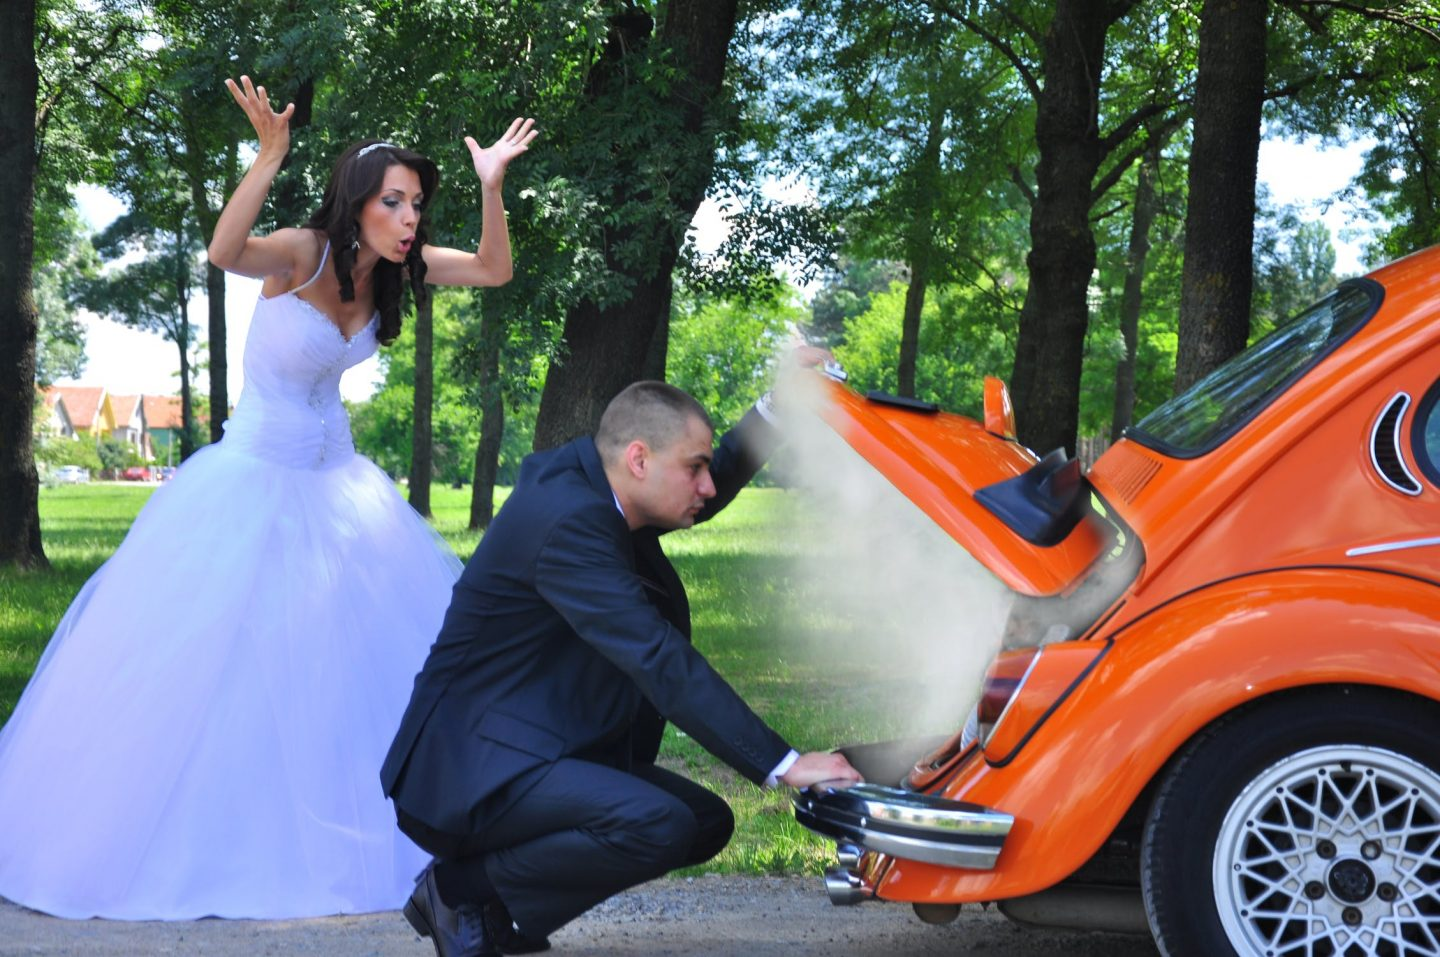 5 Common Wedding Fights (And How To Avoid Them) - Guest Post